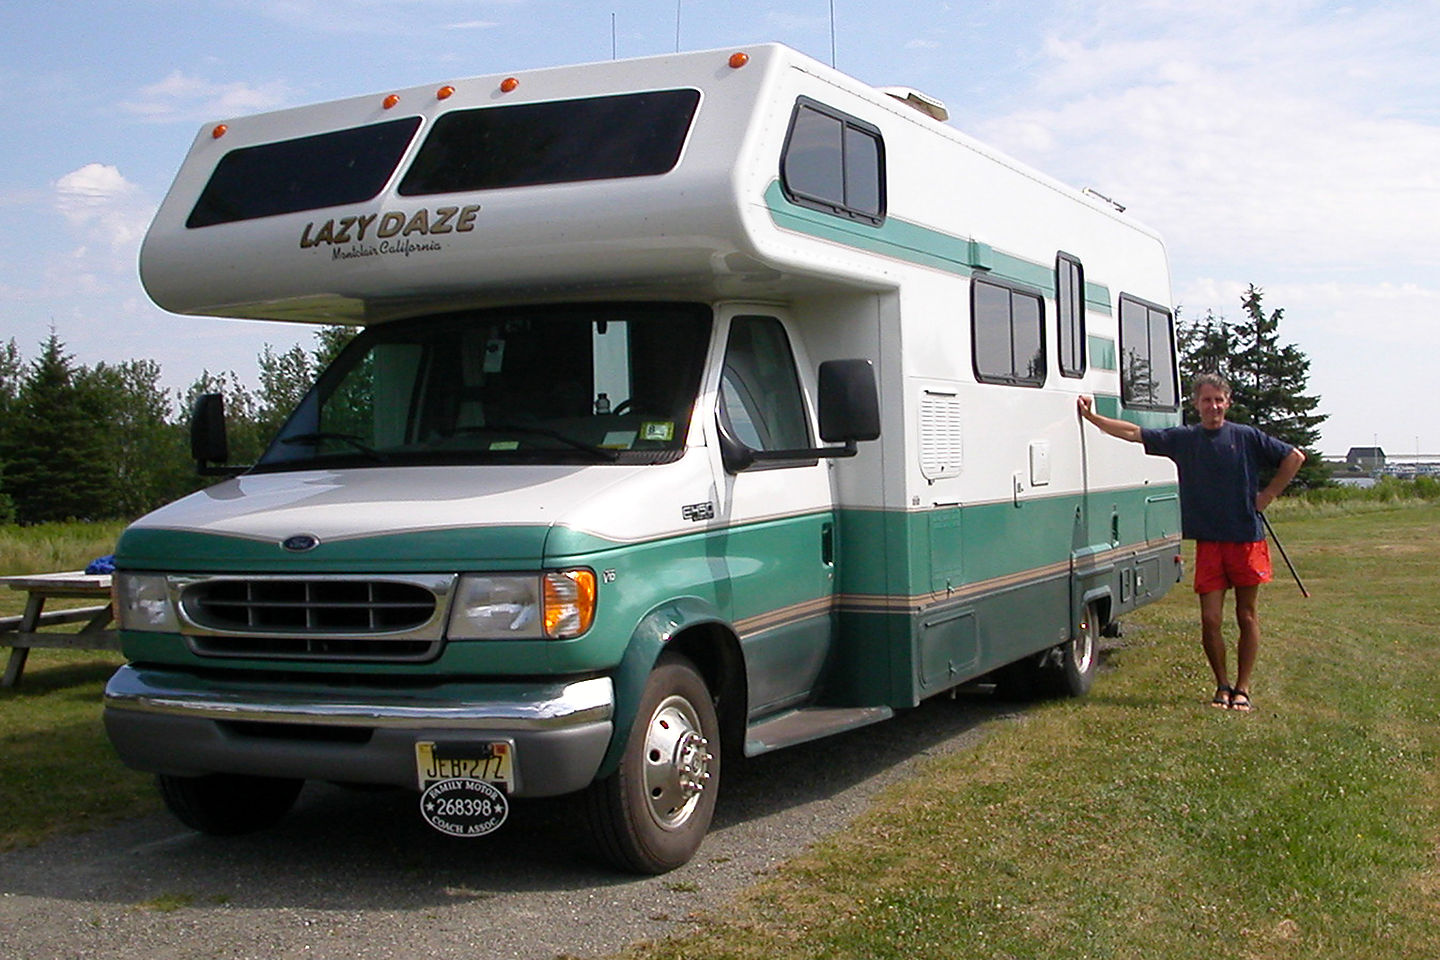 Herb and his trusty RV at the campsite